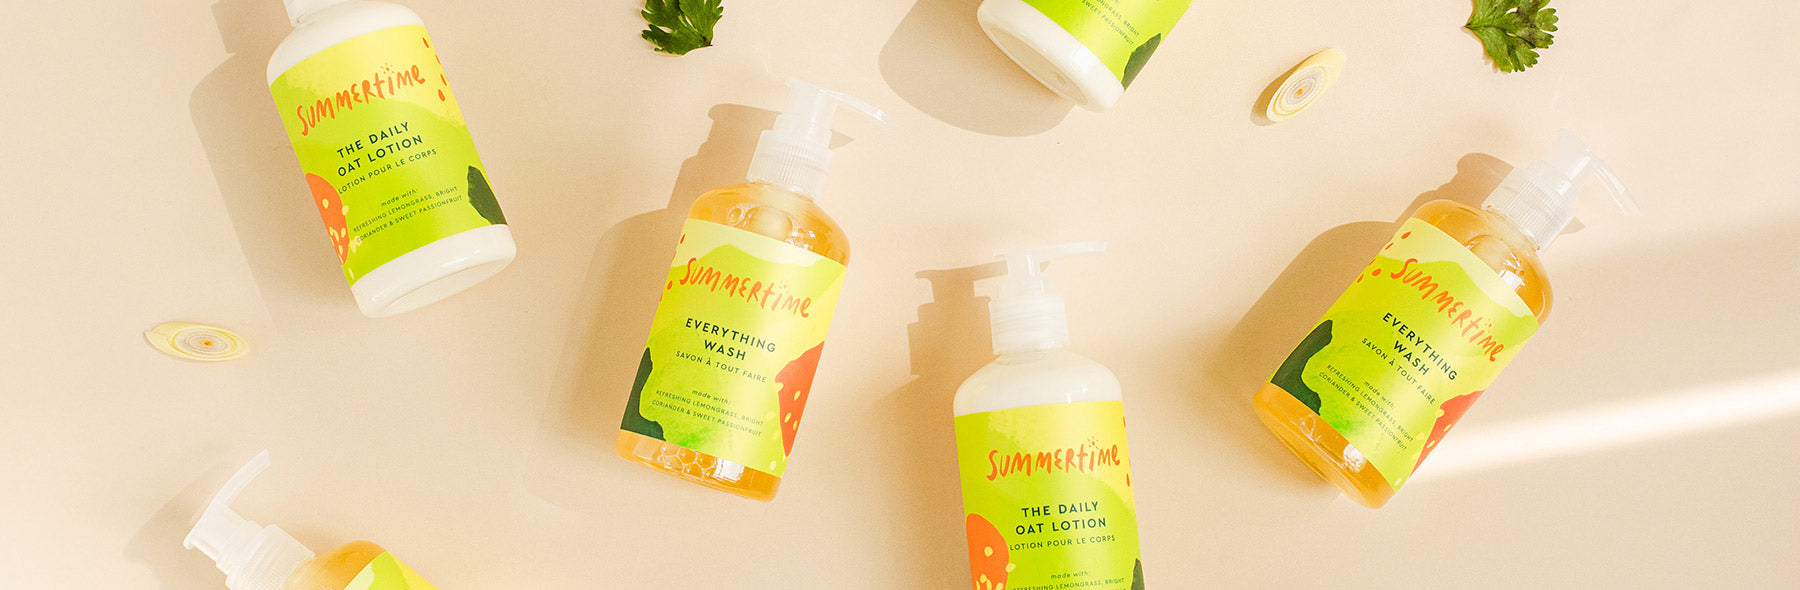 summertime body lotion and wash